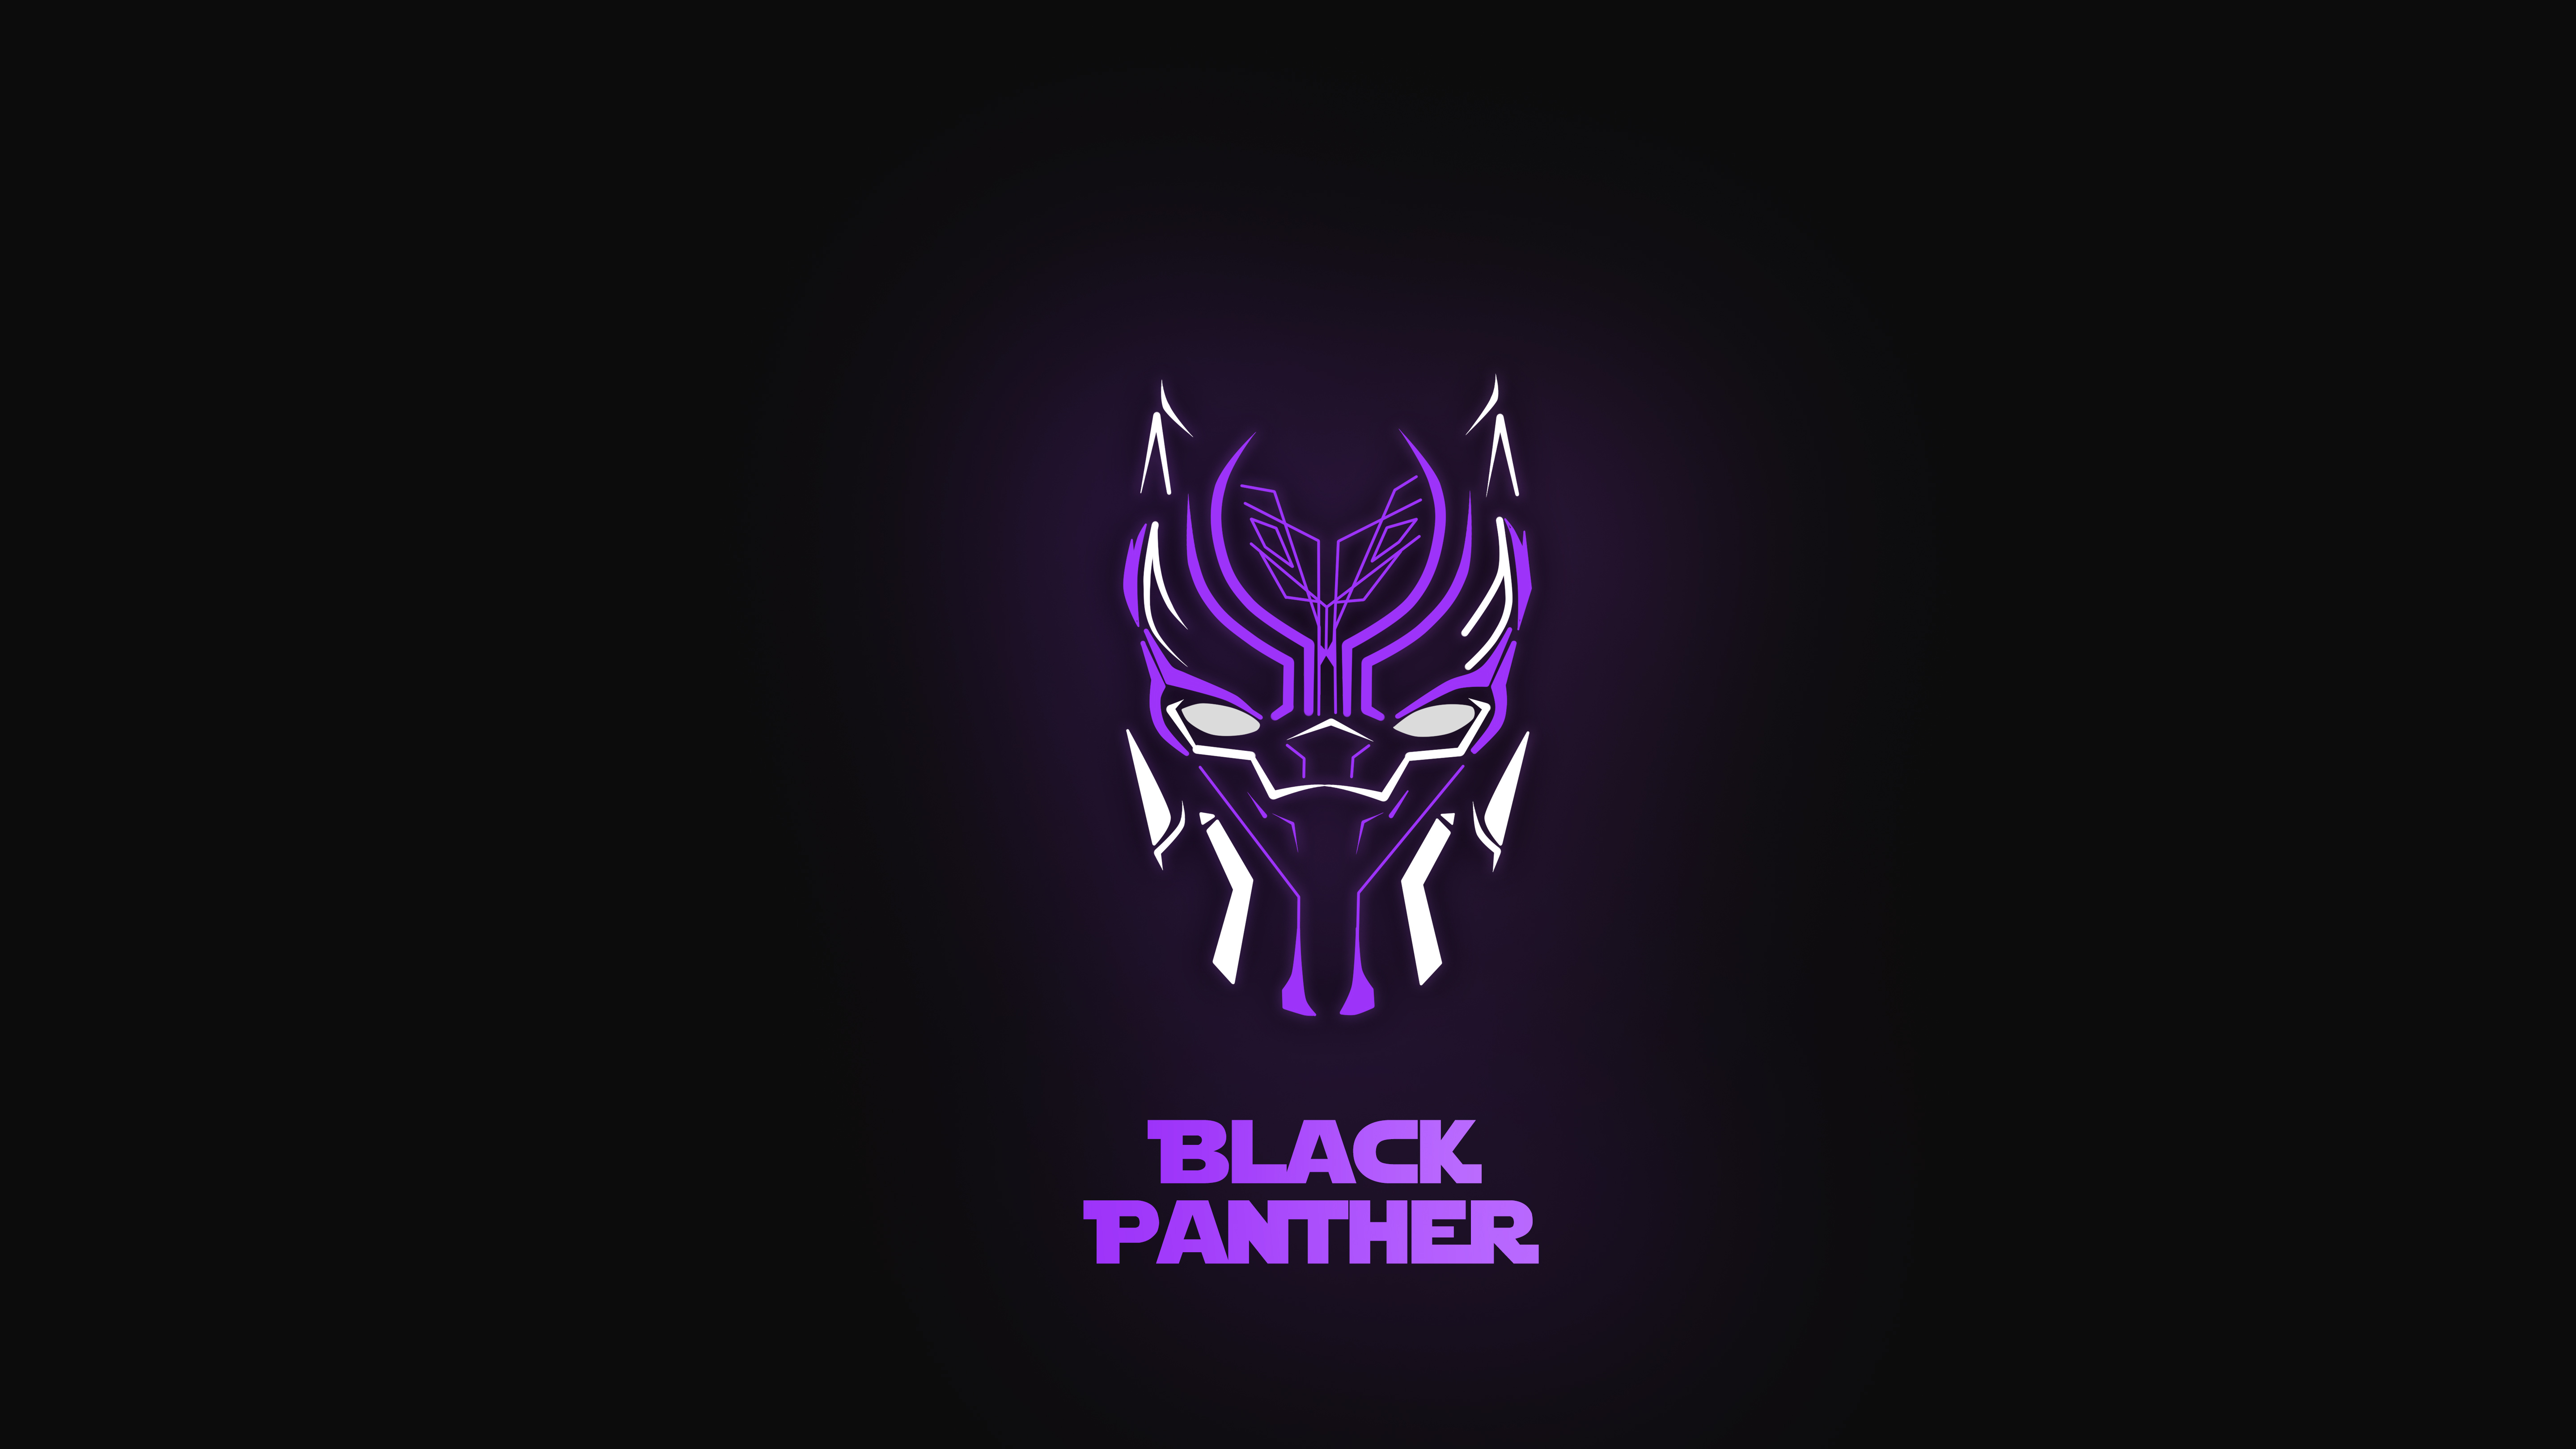 1920x1080 Black Panther Neon 5k Laptop Full Hd 1080p Hd 4k Wallpapers Images Backgrounds Photos And Pictures